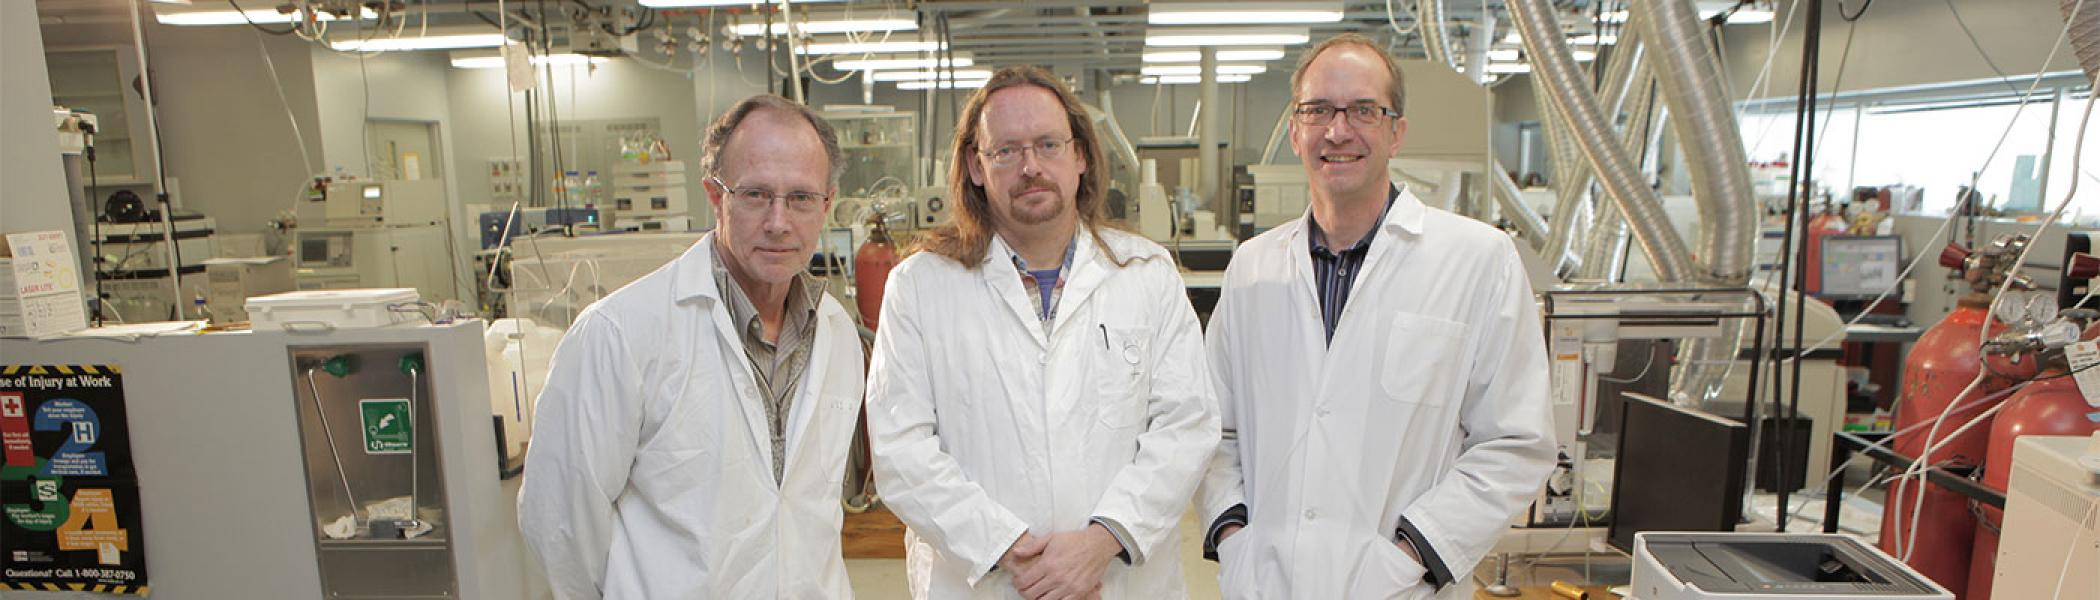 three individuals in white lab coats standing next to one another in the water quality centre